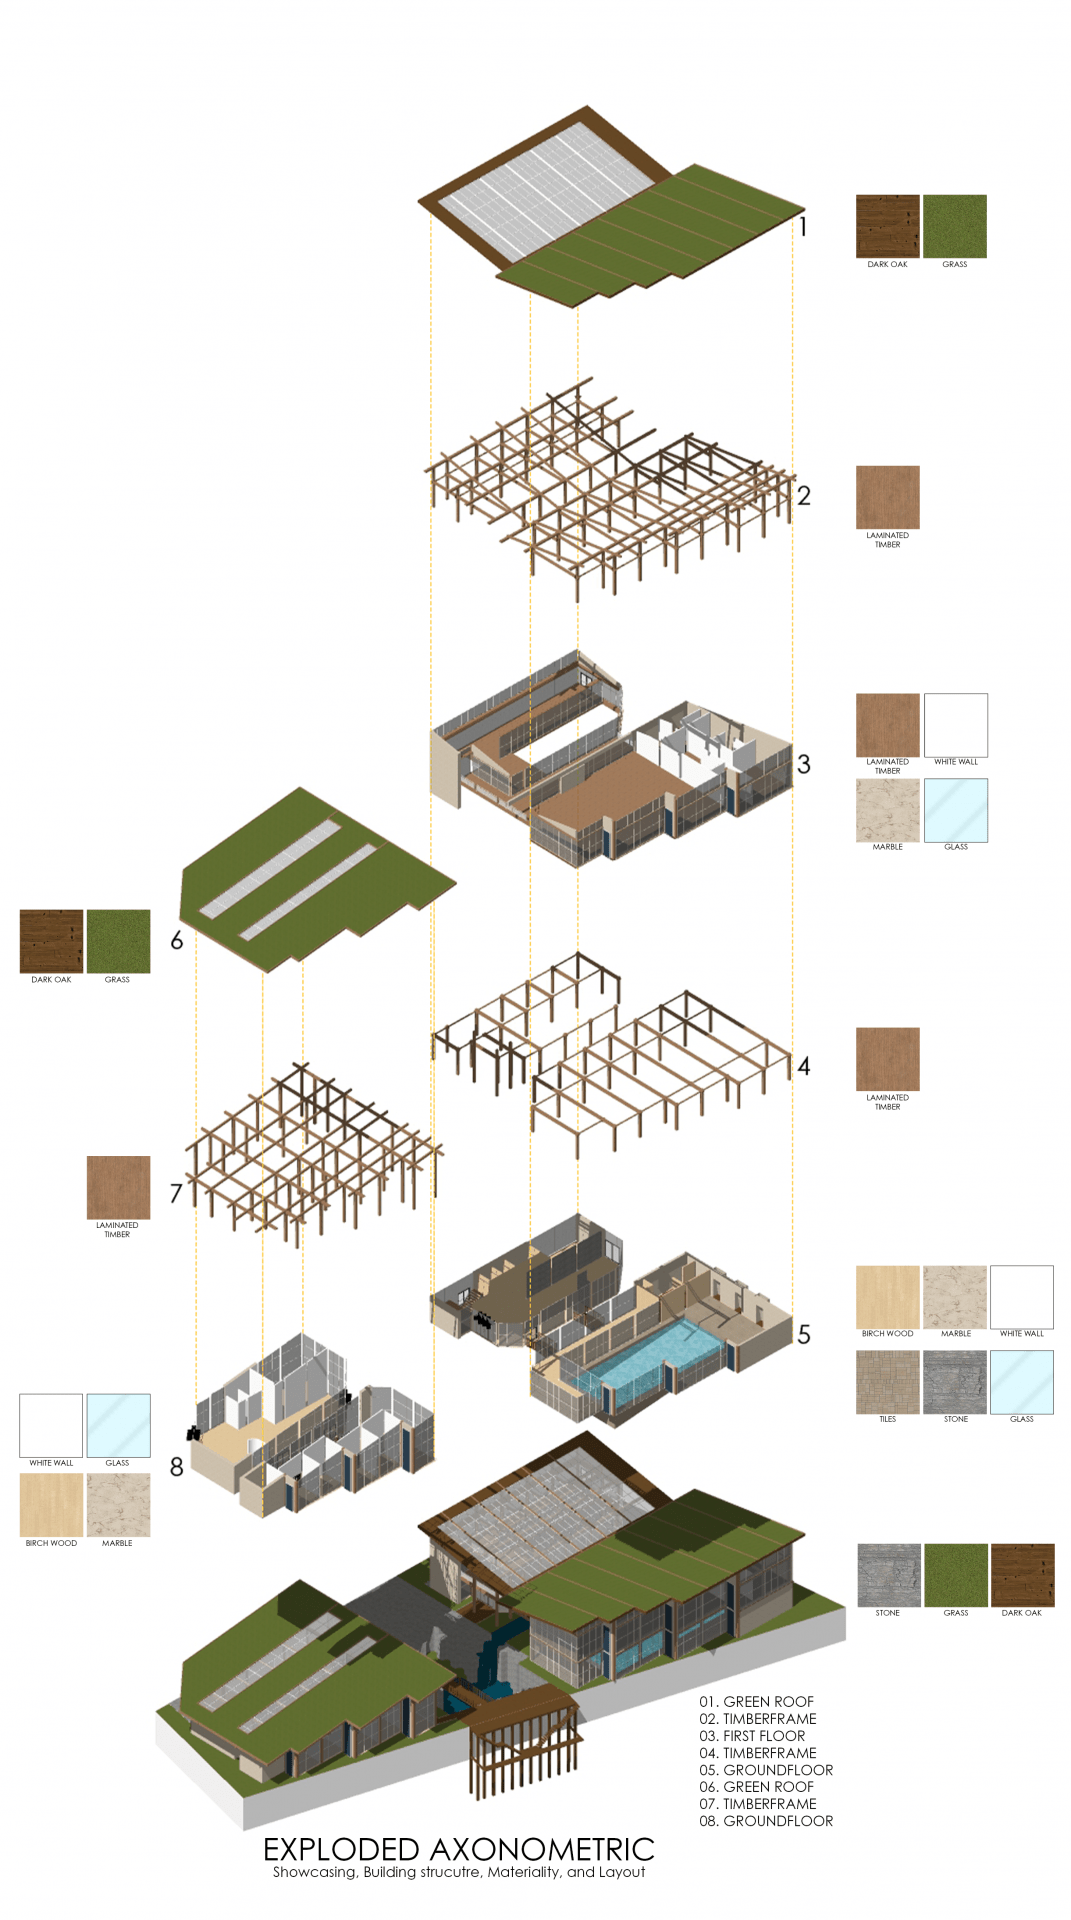 Exploded Axonometric of the design showcasing the structure, layout, and materiality.